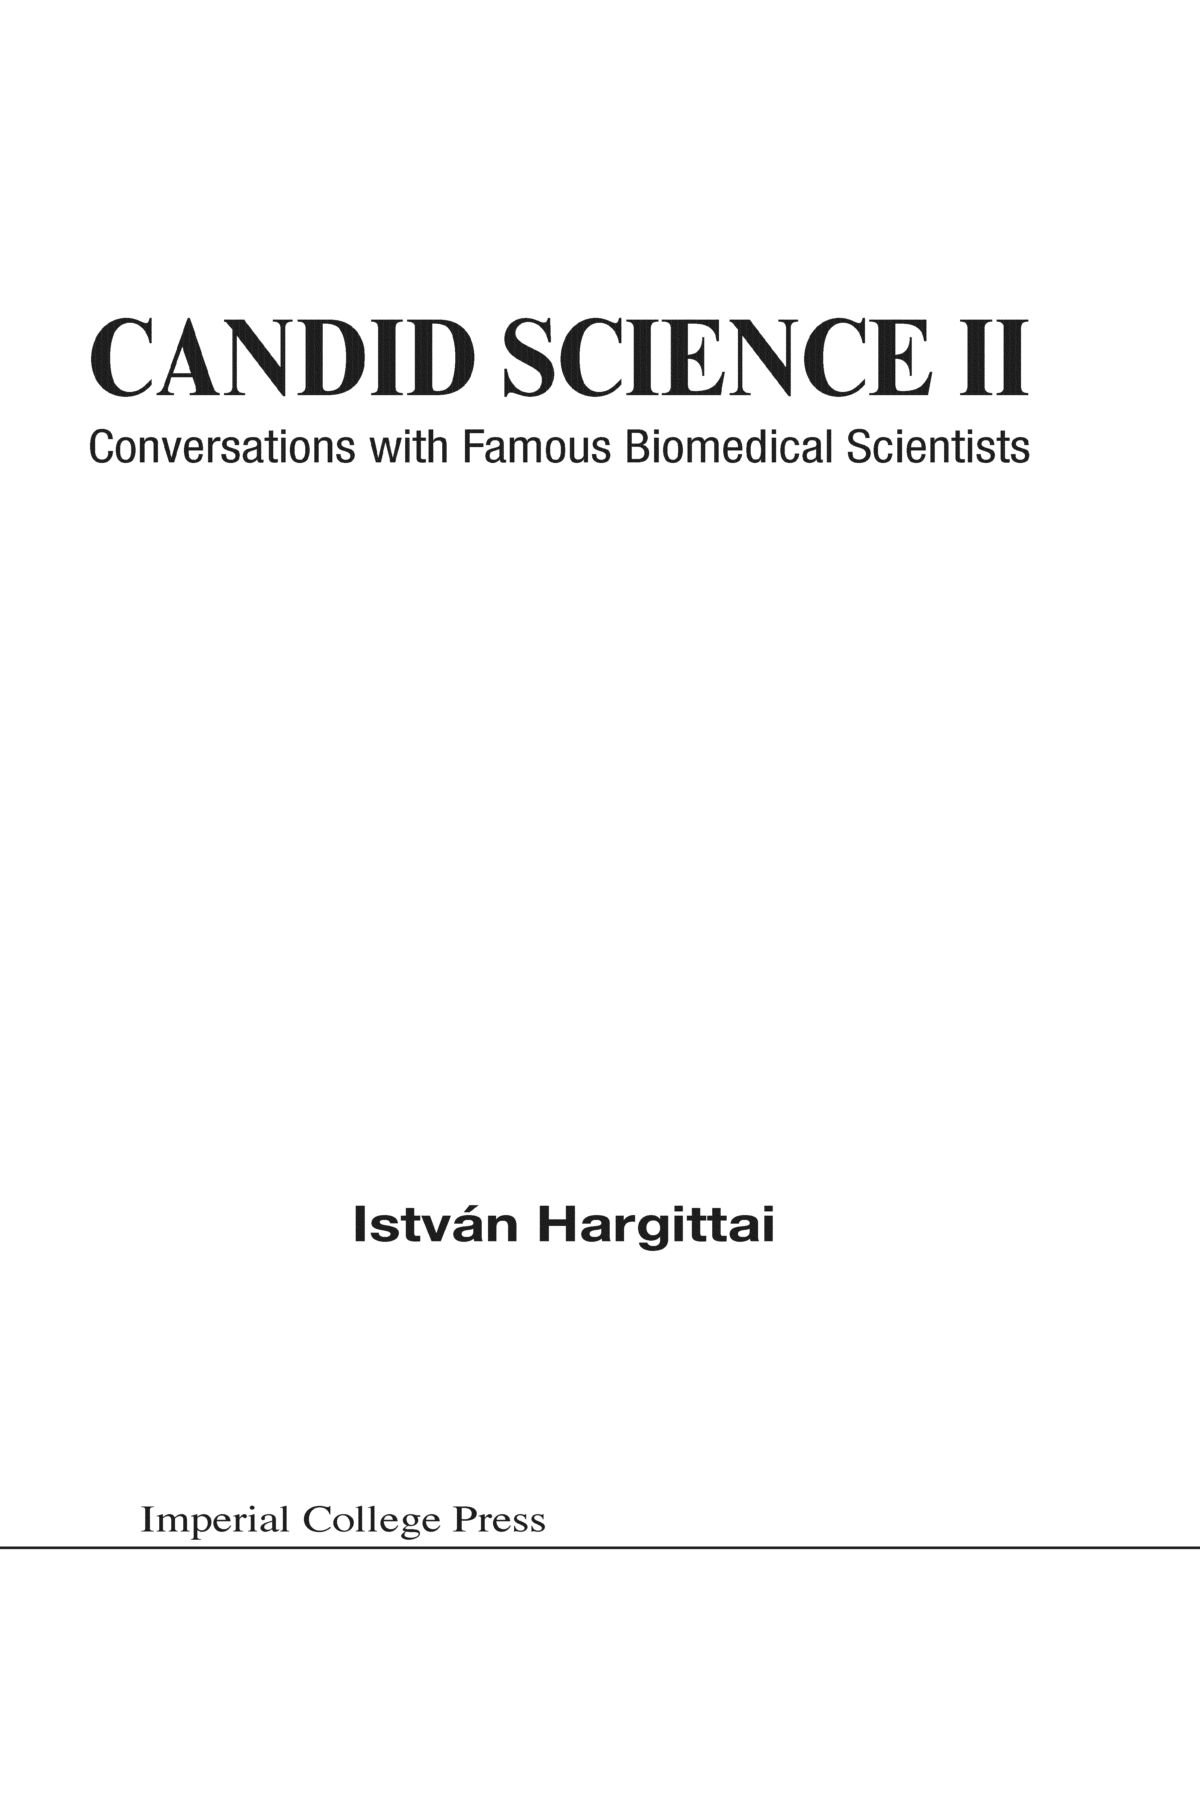 Candid Science II: Conversations with Famous Biomedical Scientists (Pt.2)